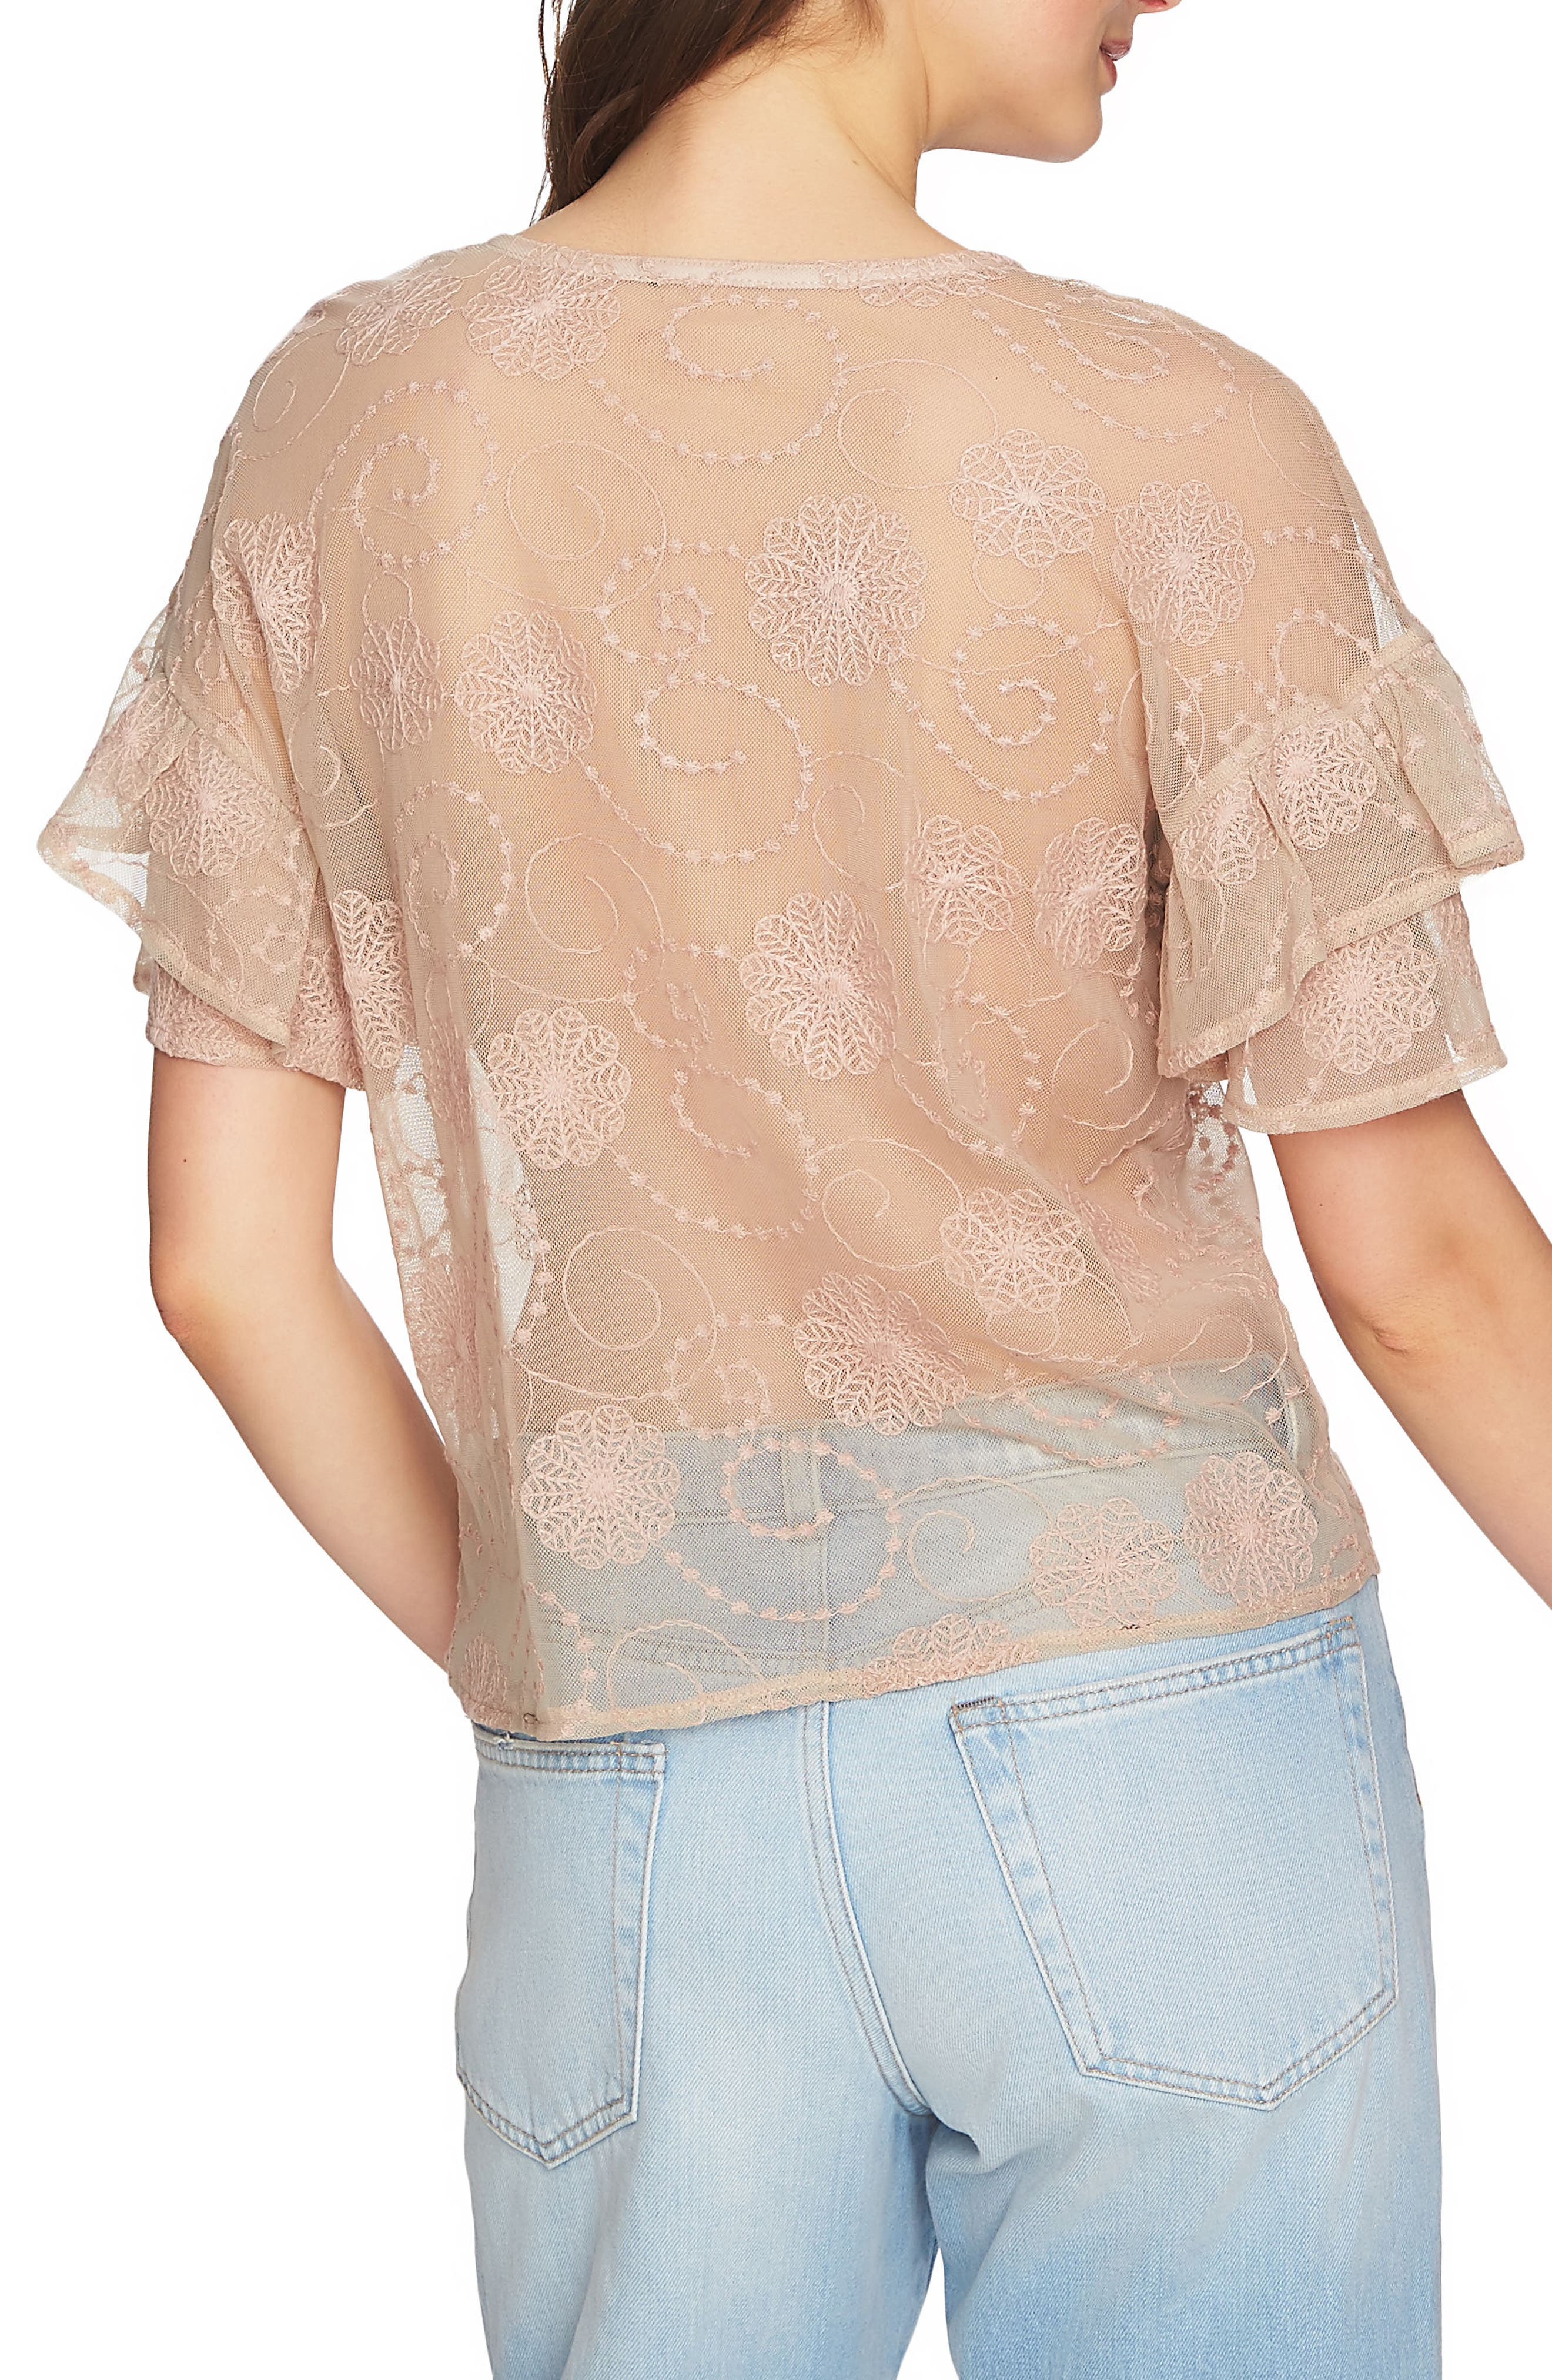 Embroidered Ruffle Sleeve Top,                             Alternate thumbnail 2, color,                             Sheer Blush